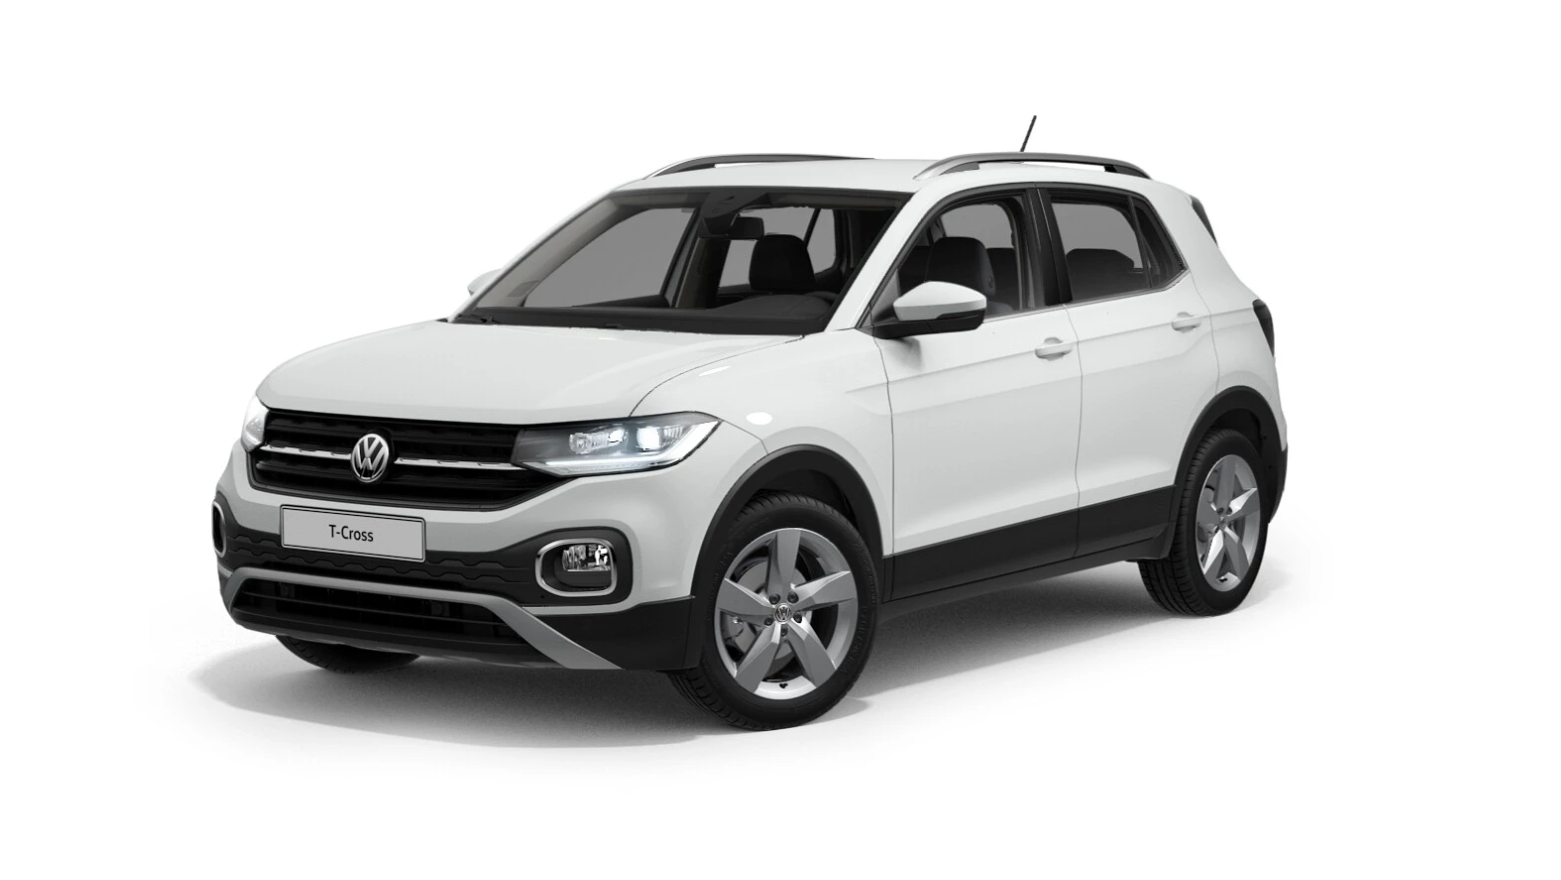 T-Cross DESIGN 1.0l TSI 115ZS DSG